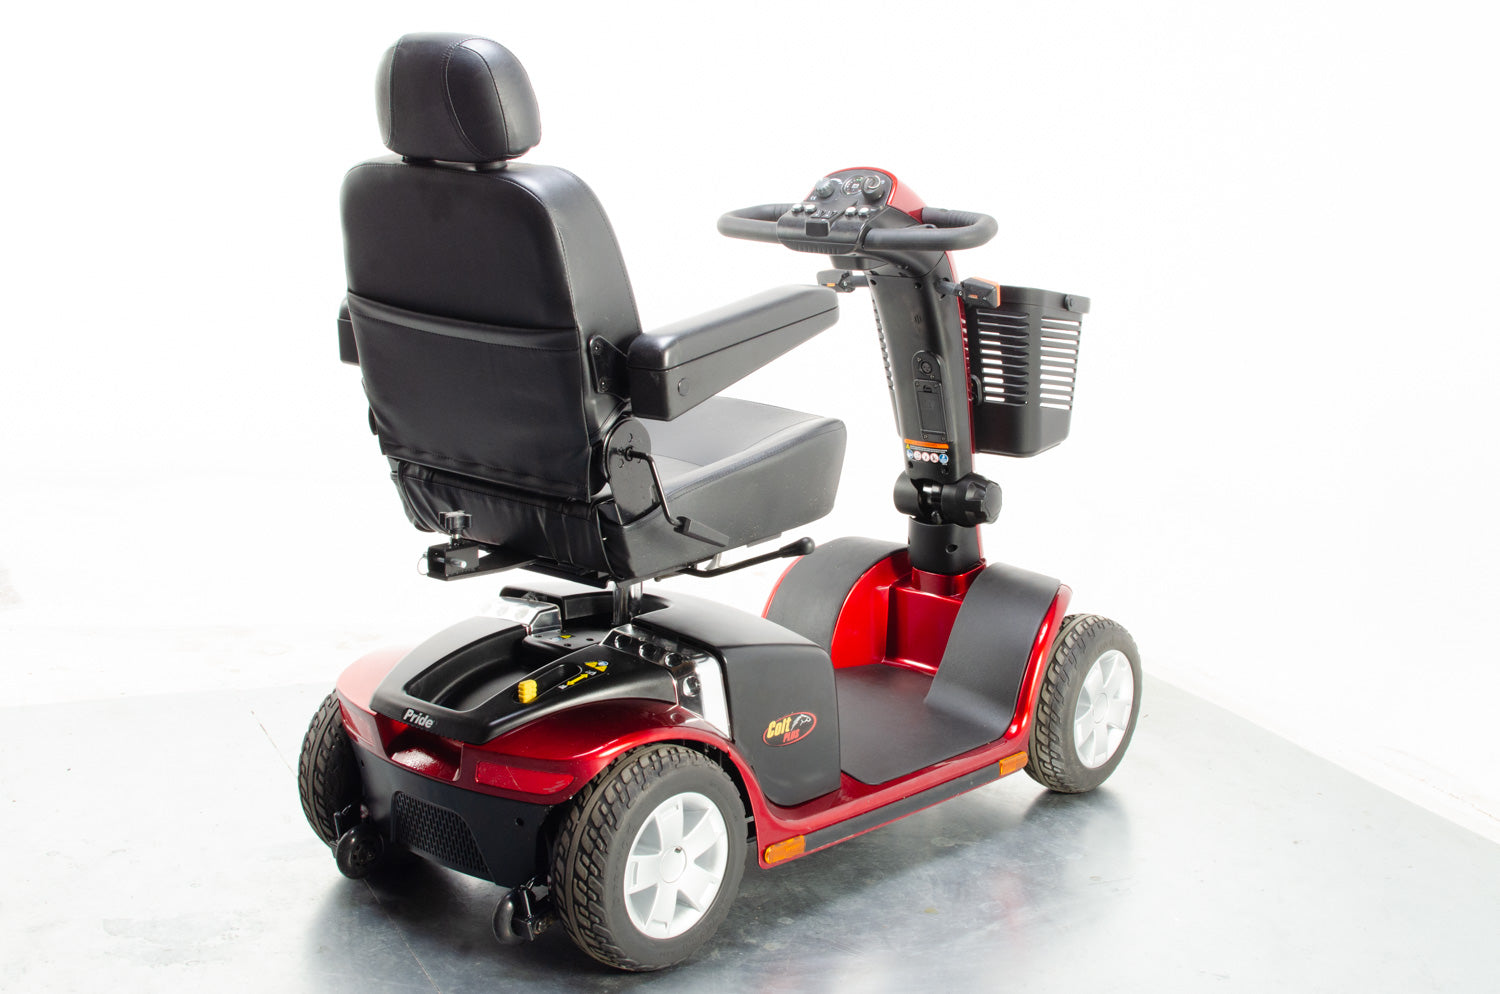 Pride Colt Plus 4mph Mid Size Transportable Mobility Boot Scooter in Red